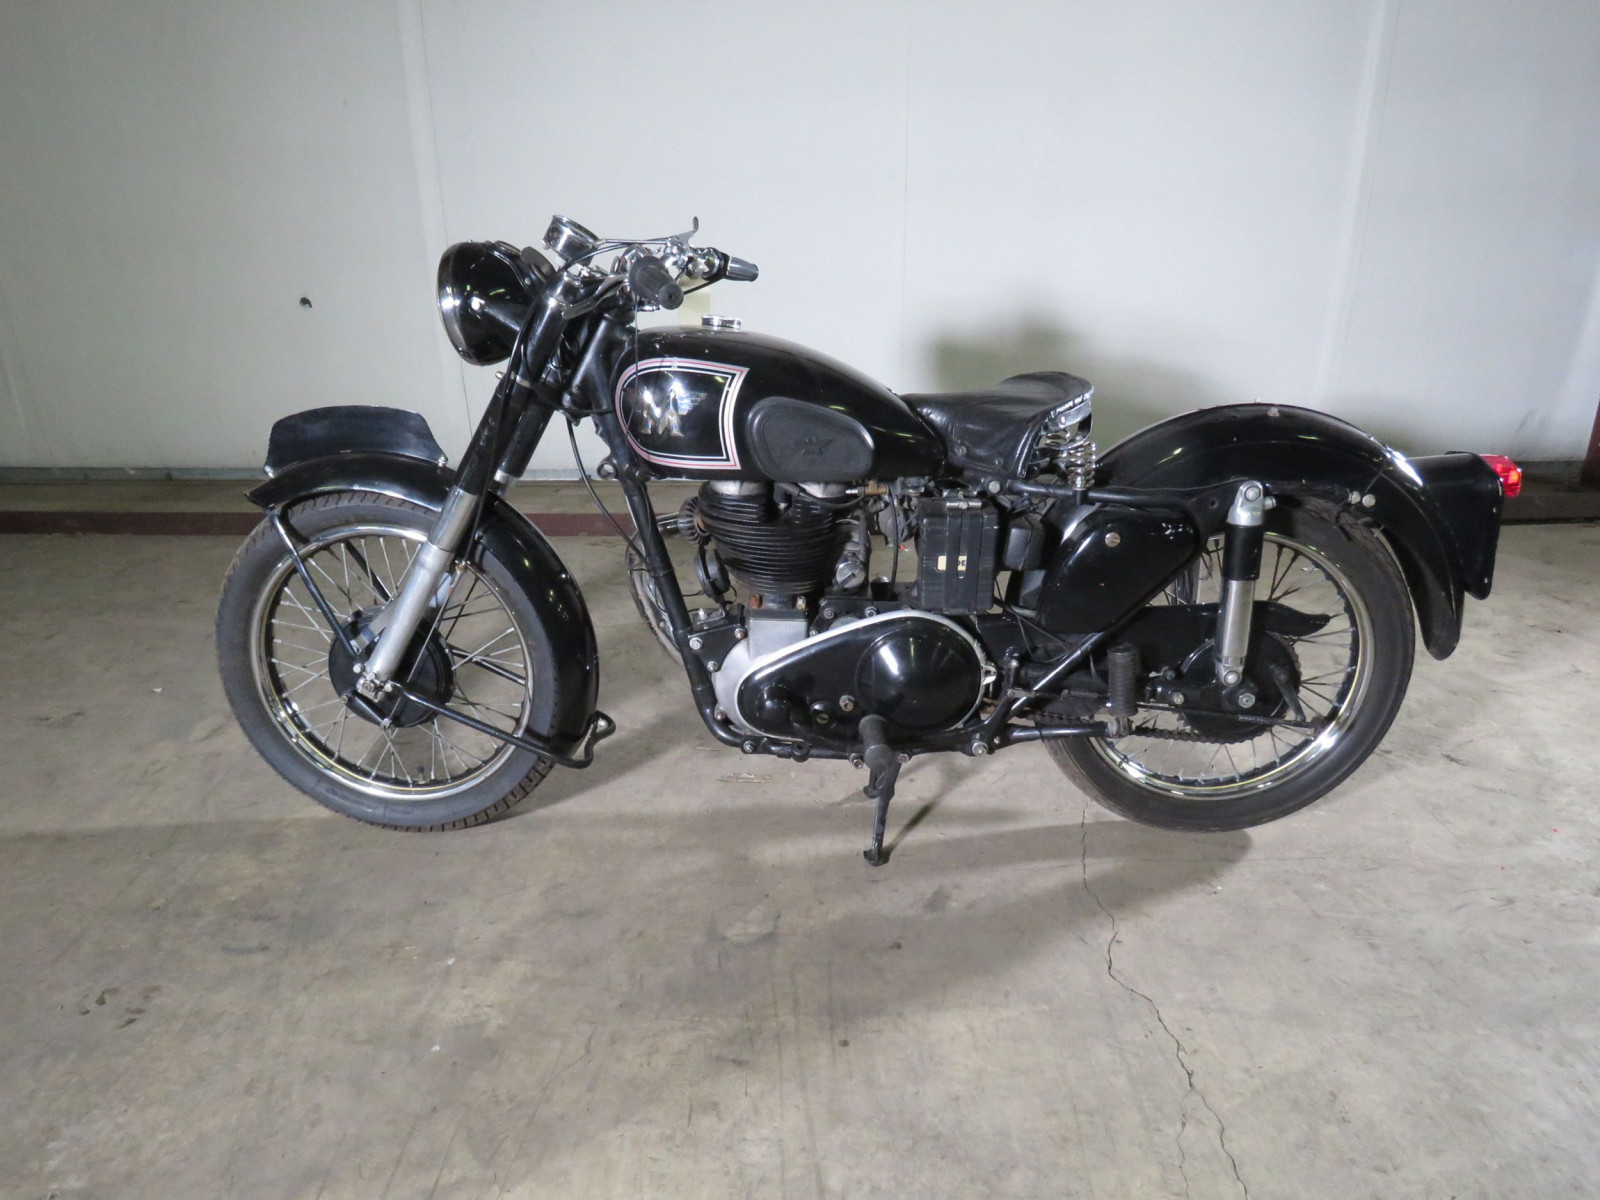 1950 Matchless G80 Motorcycle - Image 1